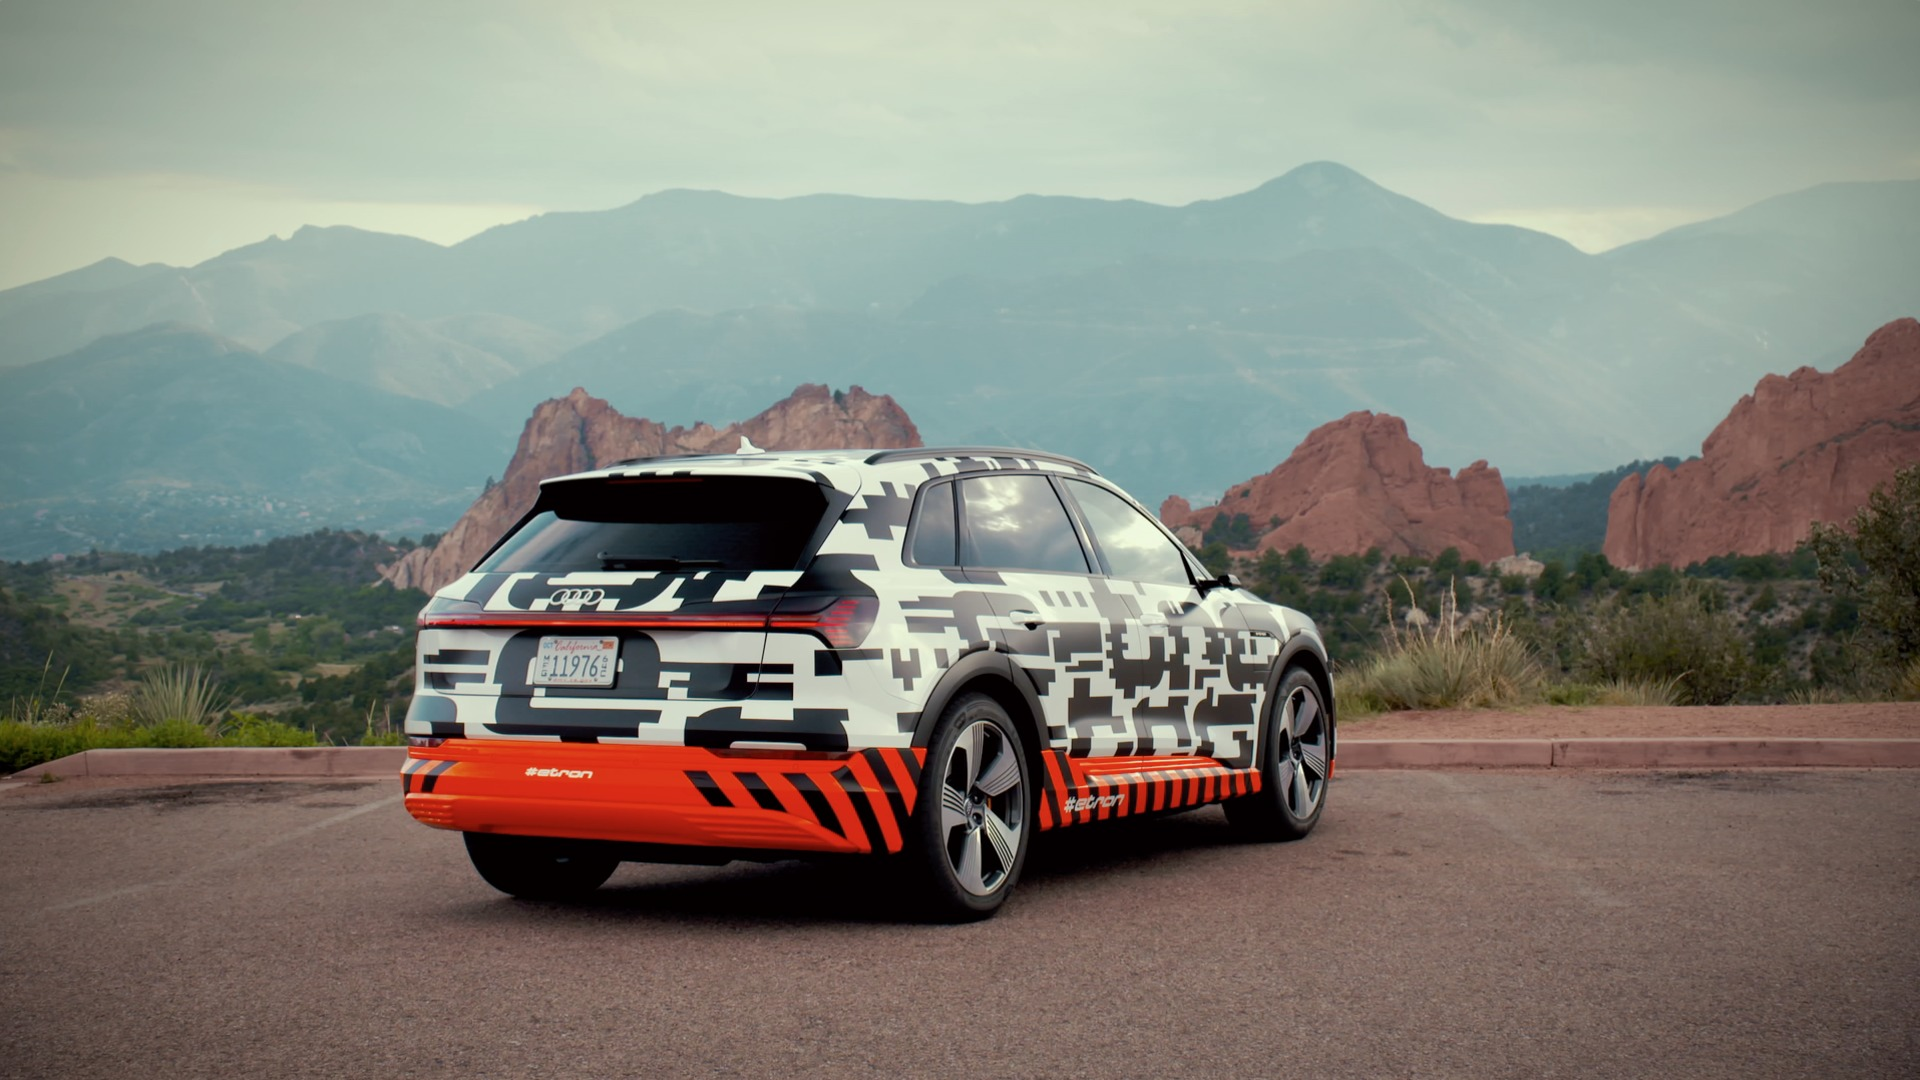 Audi e-tron prototype extreme: Recuperation test at Pikes Peak